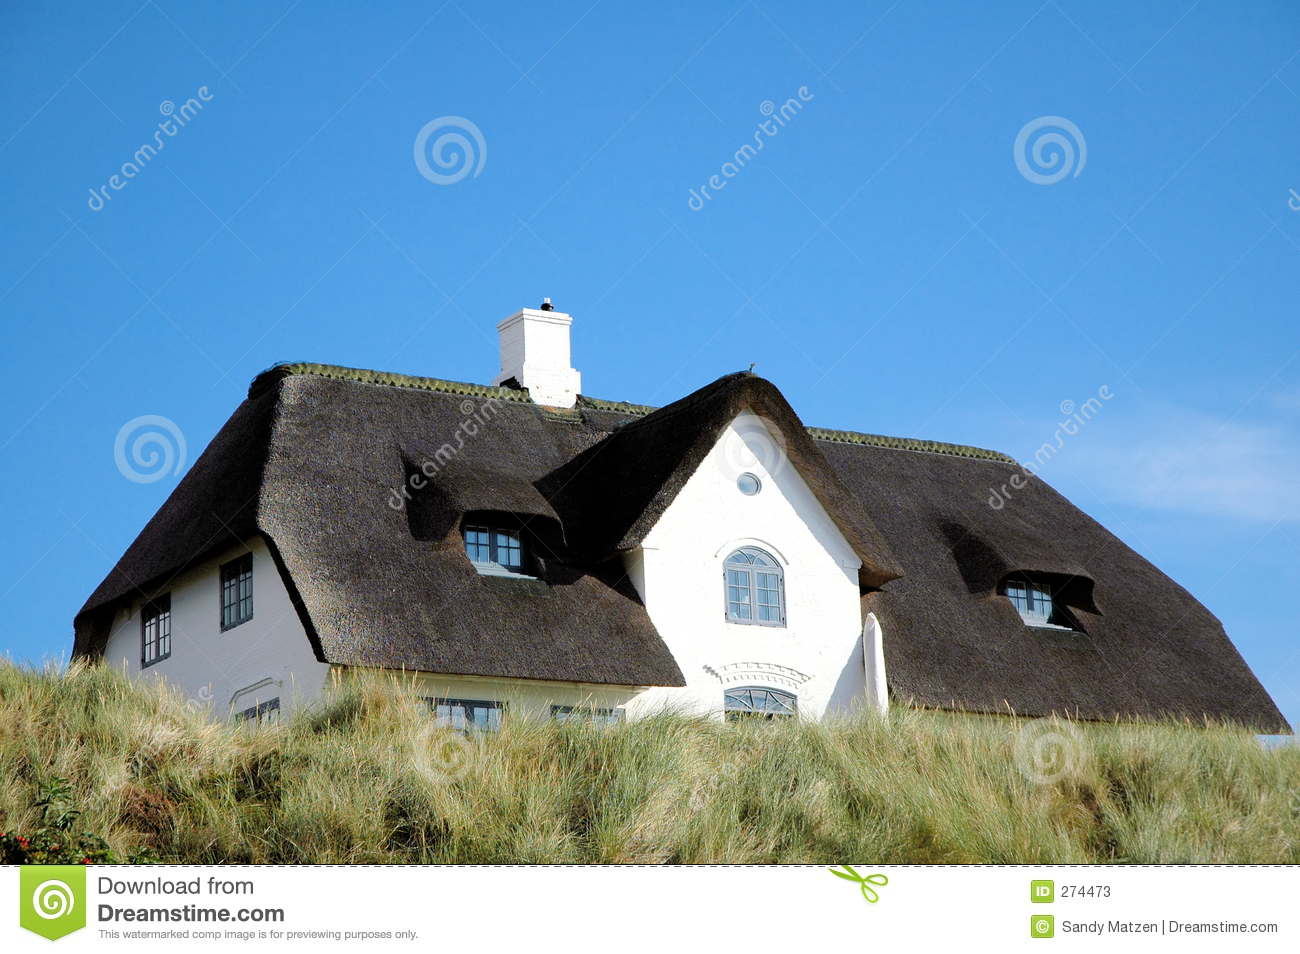 Thatched roof house 2